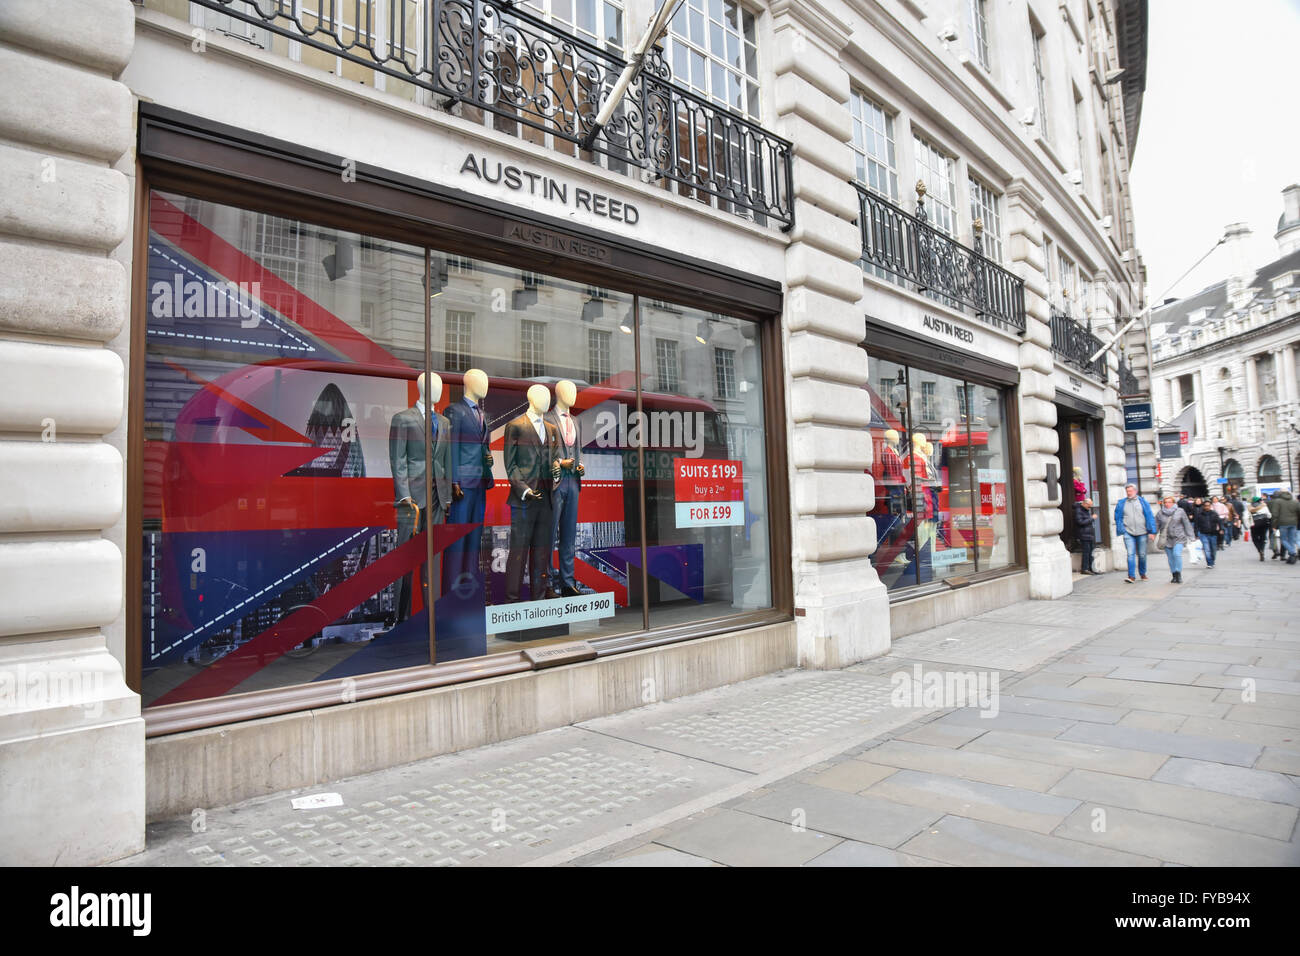 Regent Street London Uk 24th April 2016 Austin Reed Files Notice Stock Photo Alamy